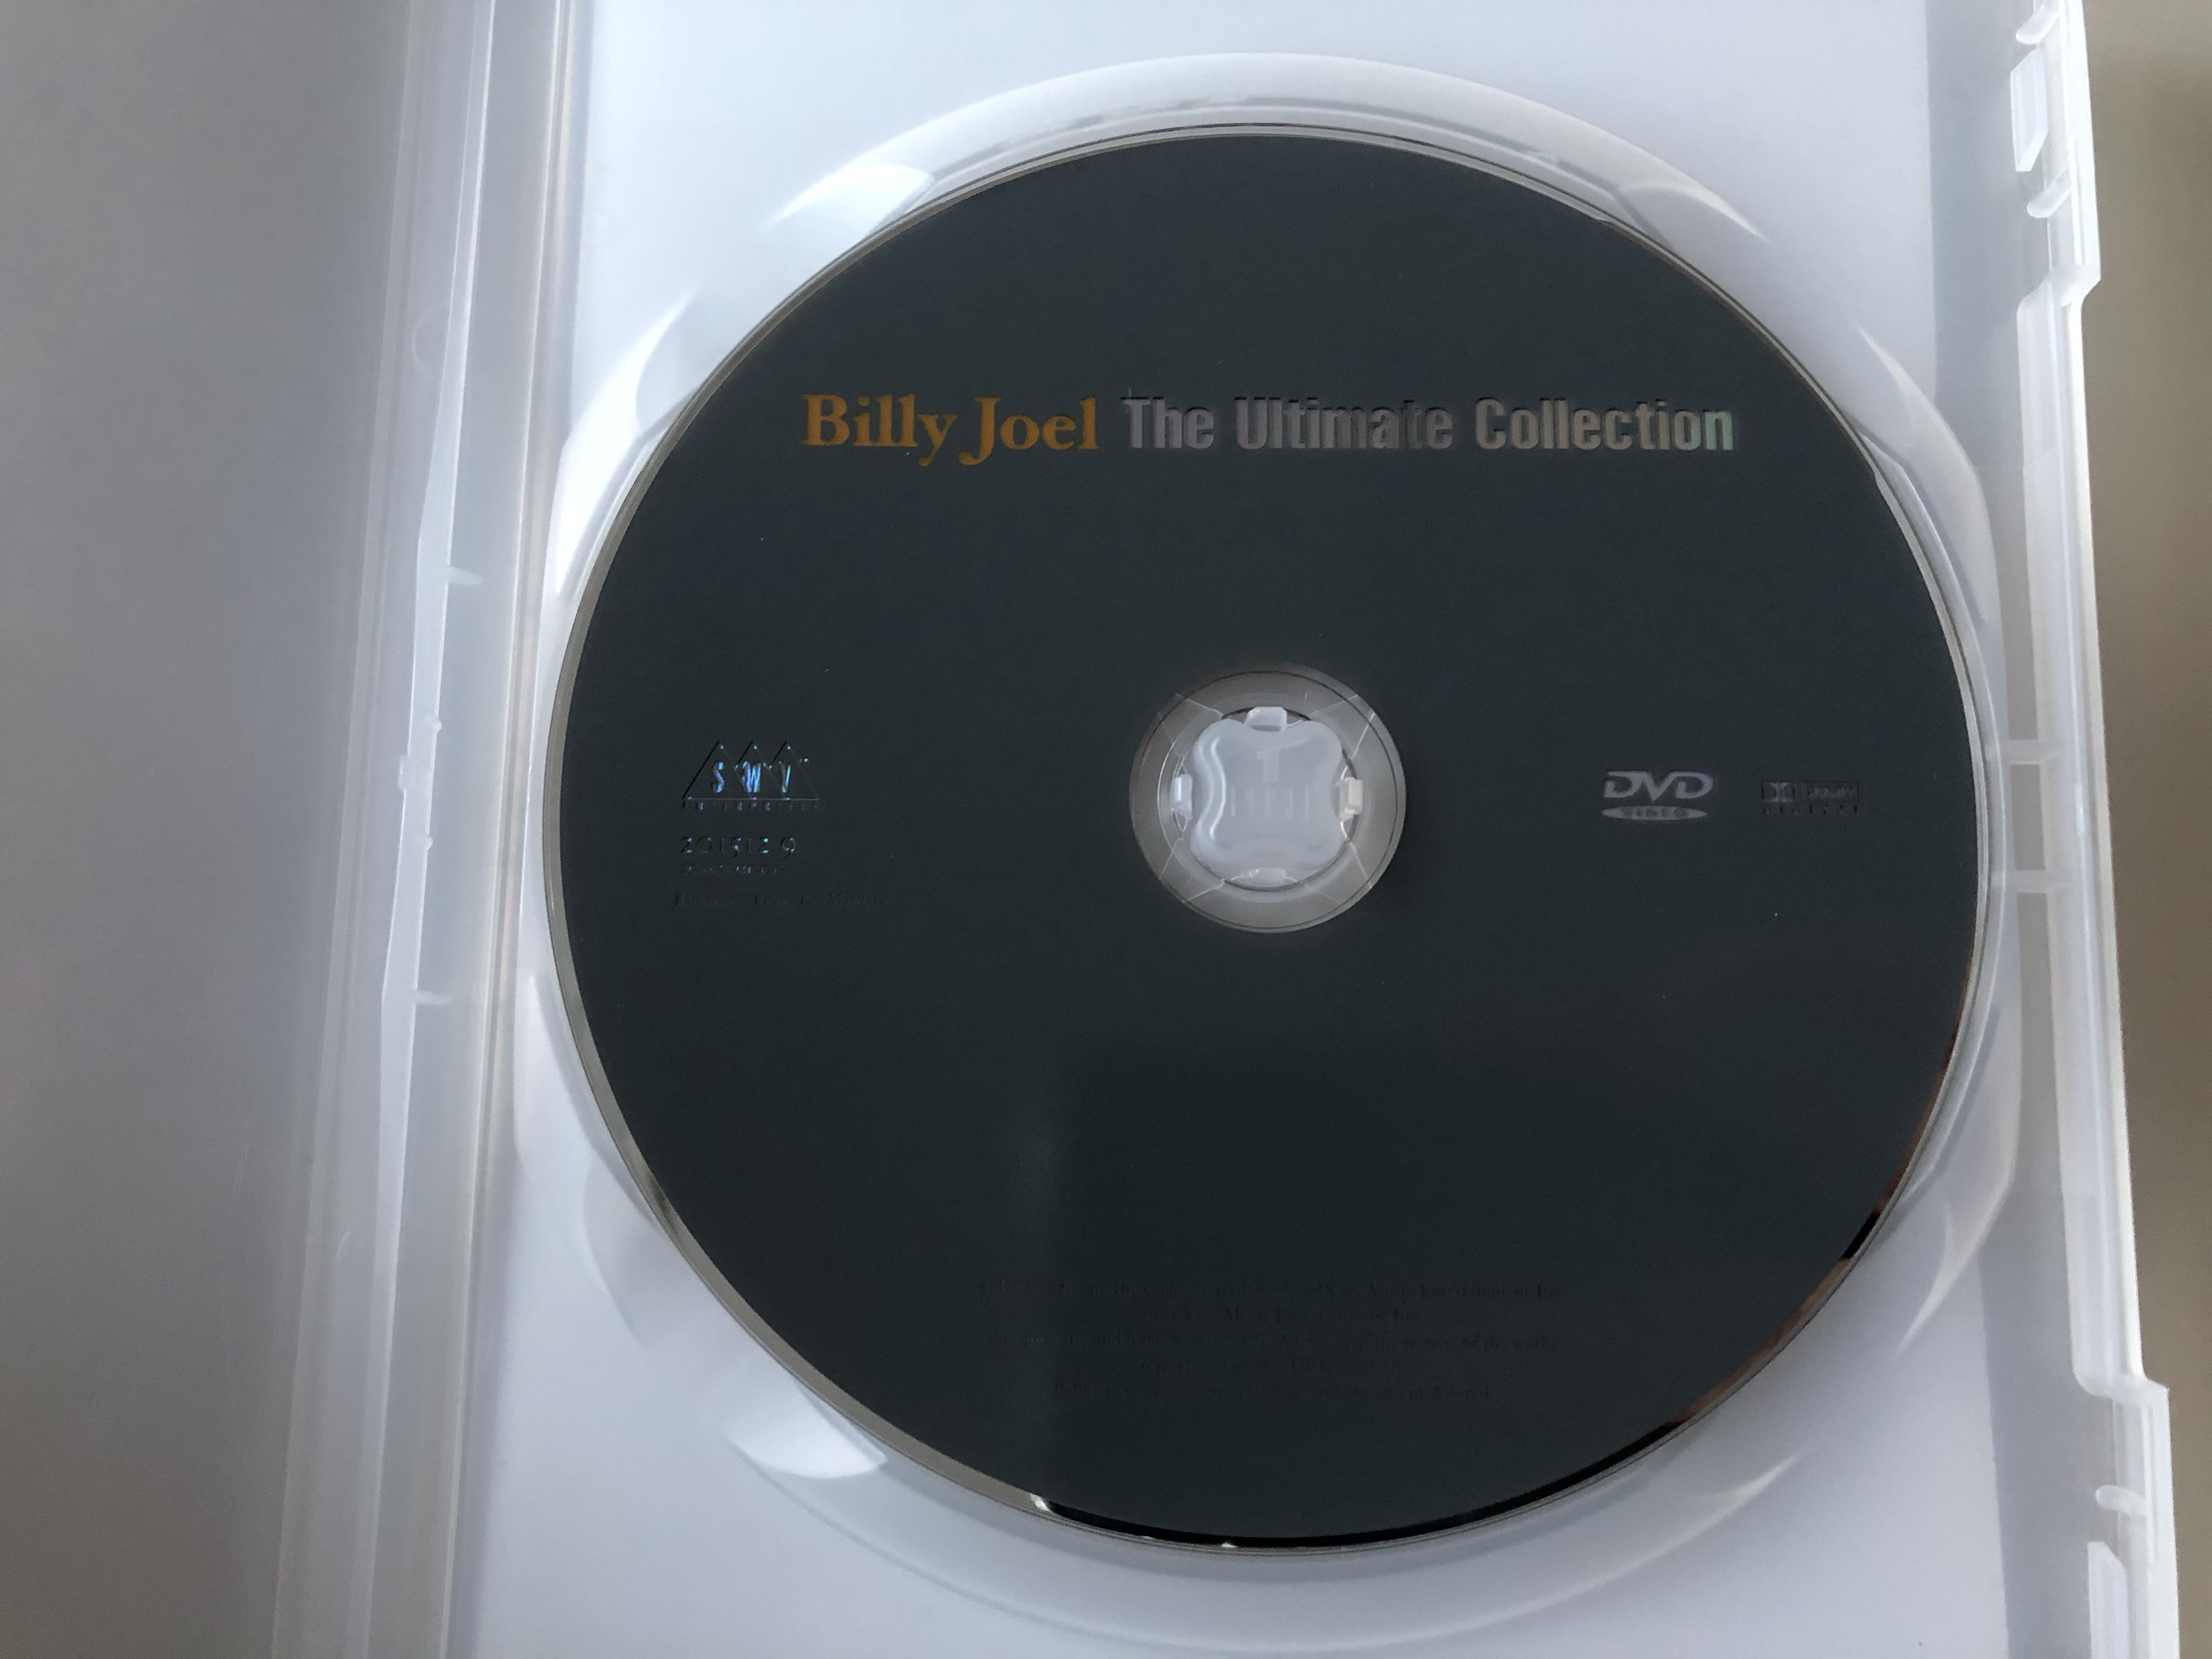 Billy Joel Ultimate Collection: The Ultimate Collection DVD 2001 / Piano Man